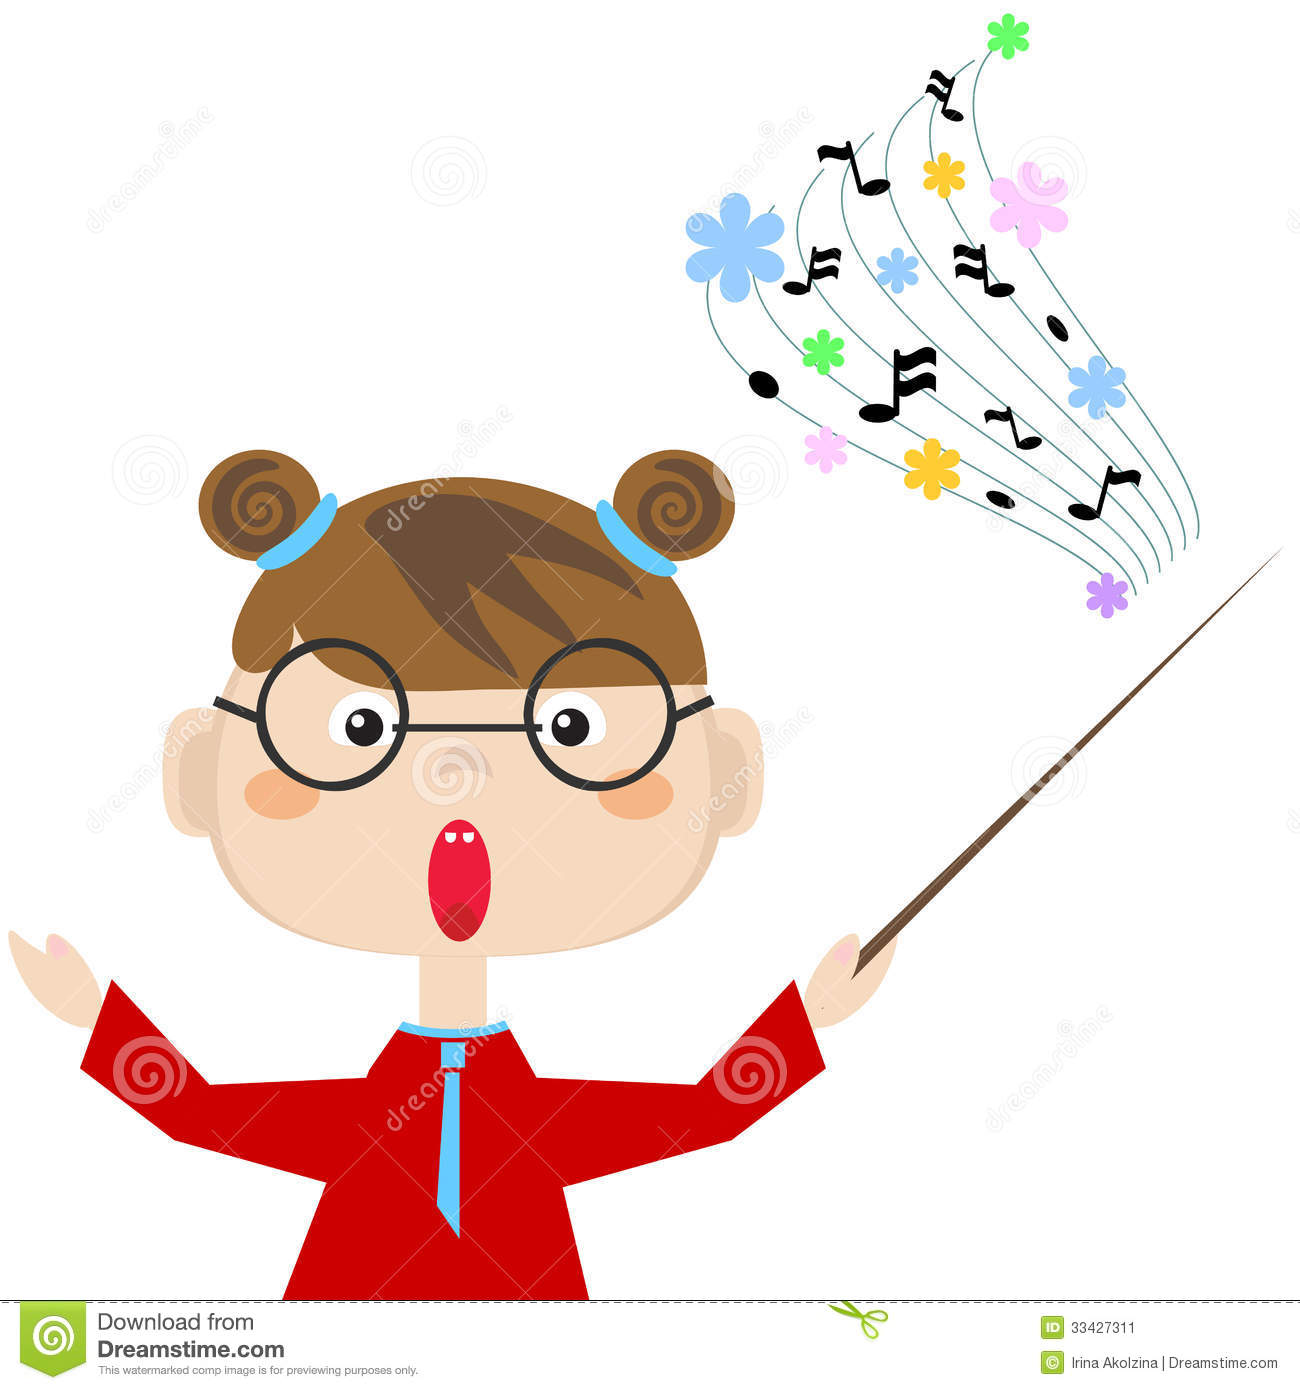 Teacher Of The Music Stock Image - Image: 33427311